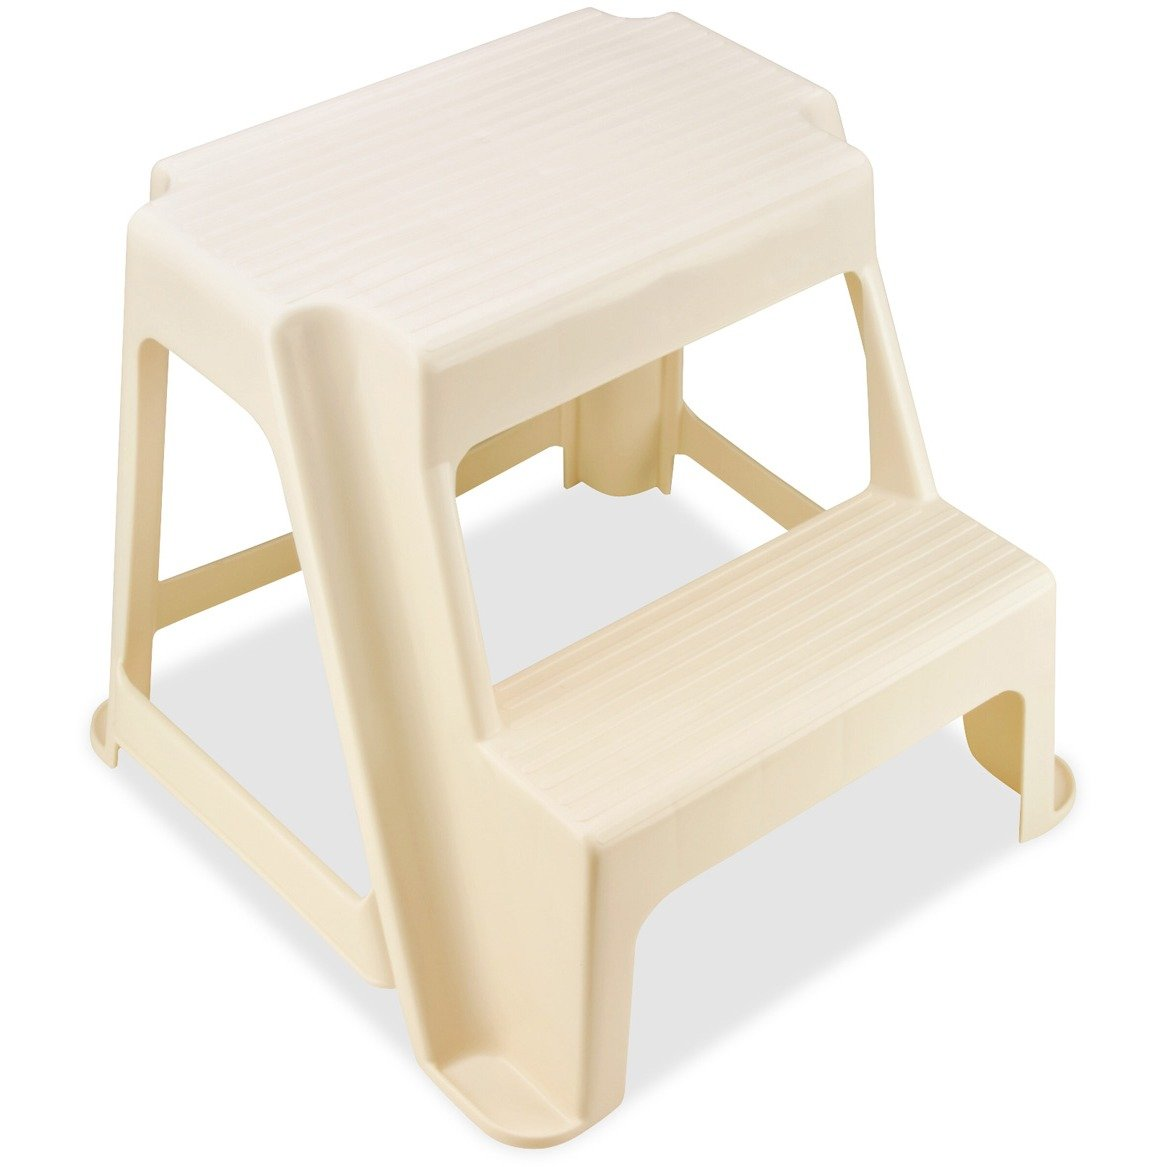 sc 1 st  Amazon.com & RCP42221 - Rubbermaid Two-Step Stool - - Amazon.com islam-shia.org